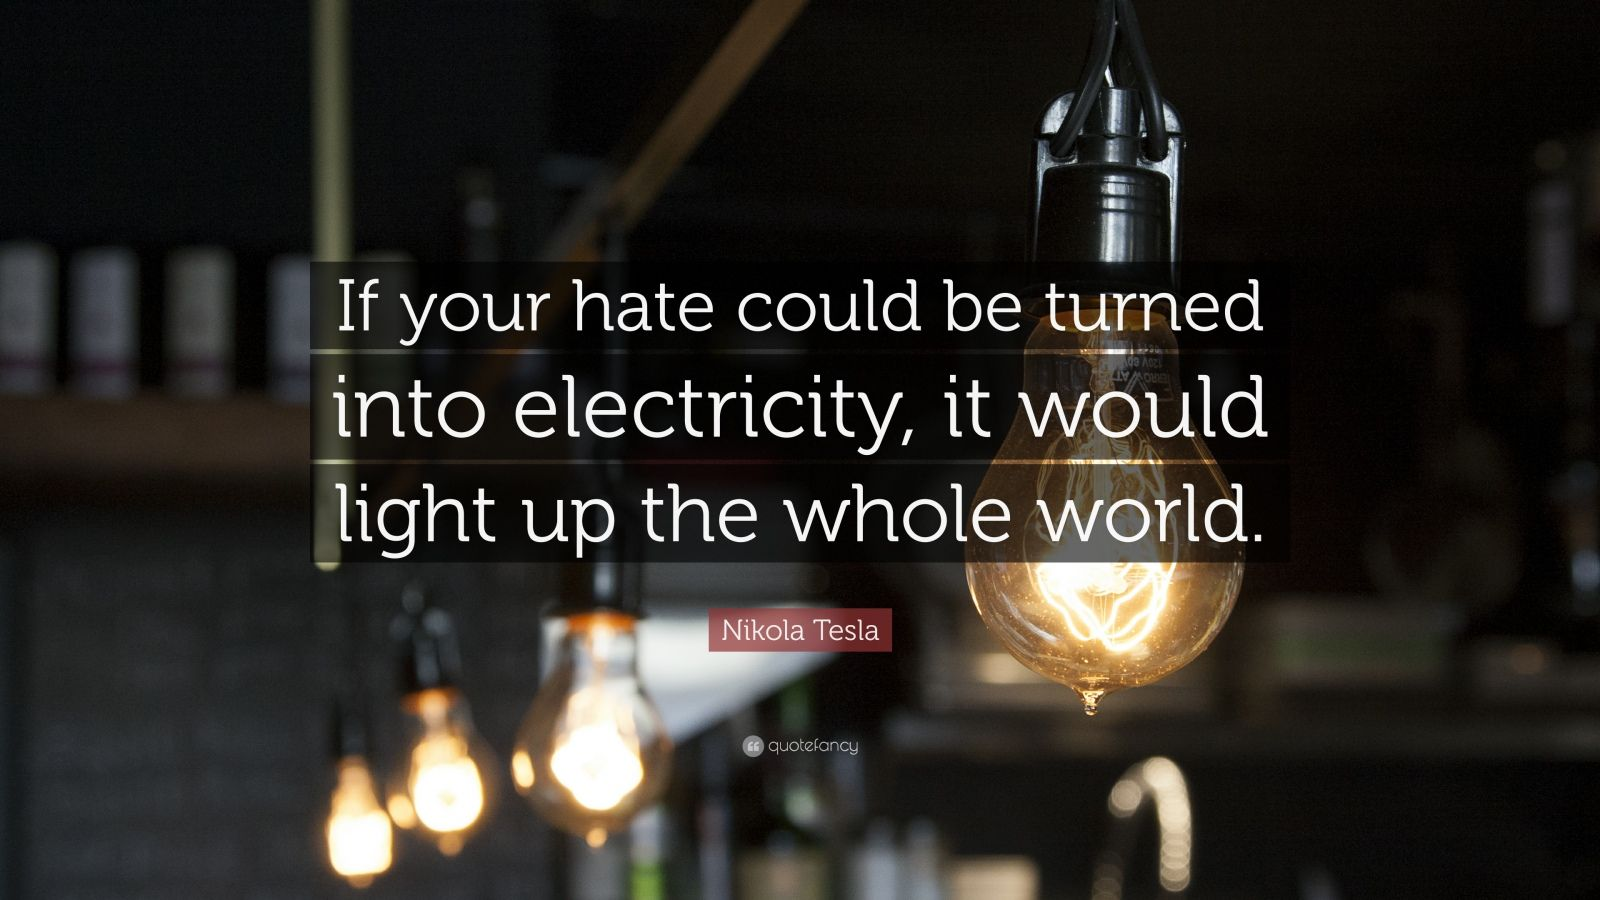 Eleanor Roosevelt Quote Wallpaper Nikola Tesla Quote If Your Hate Could Be Turned Into